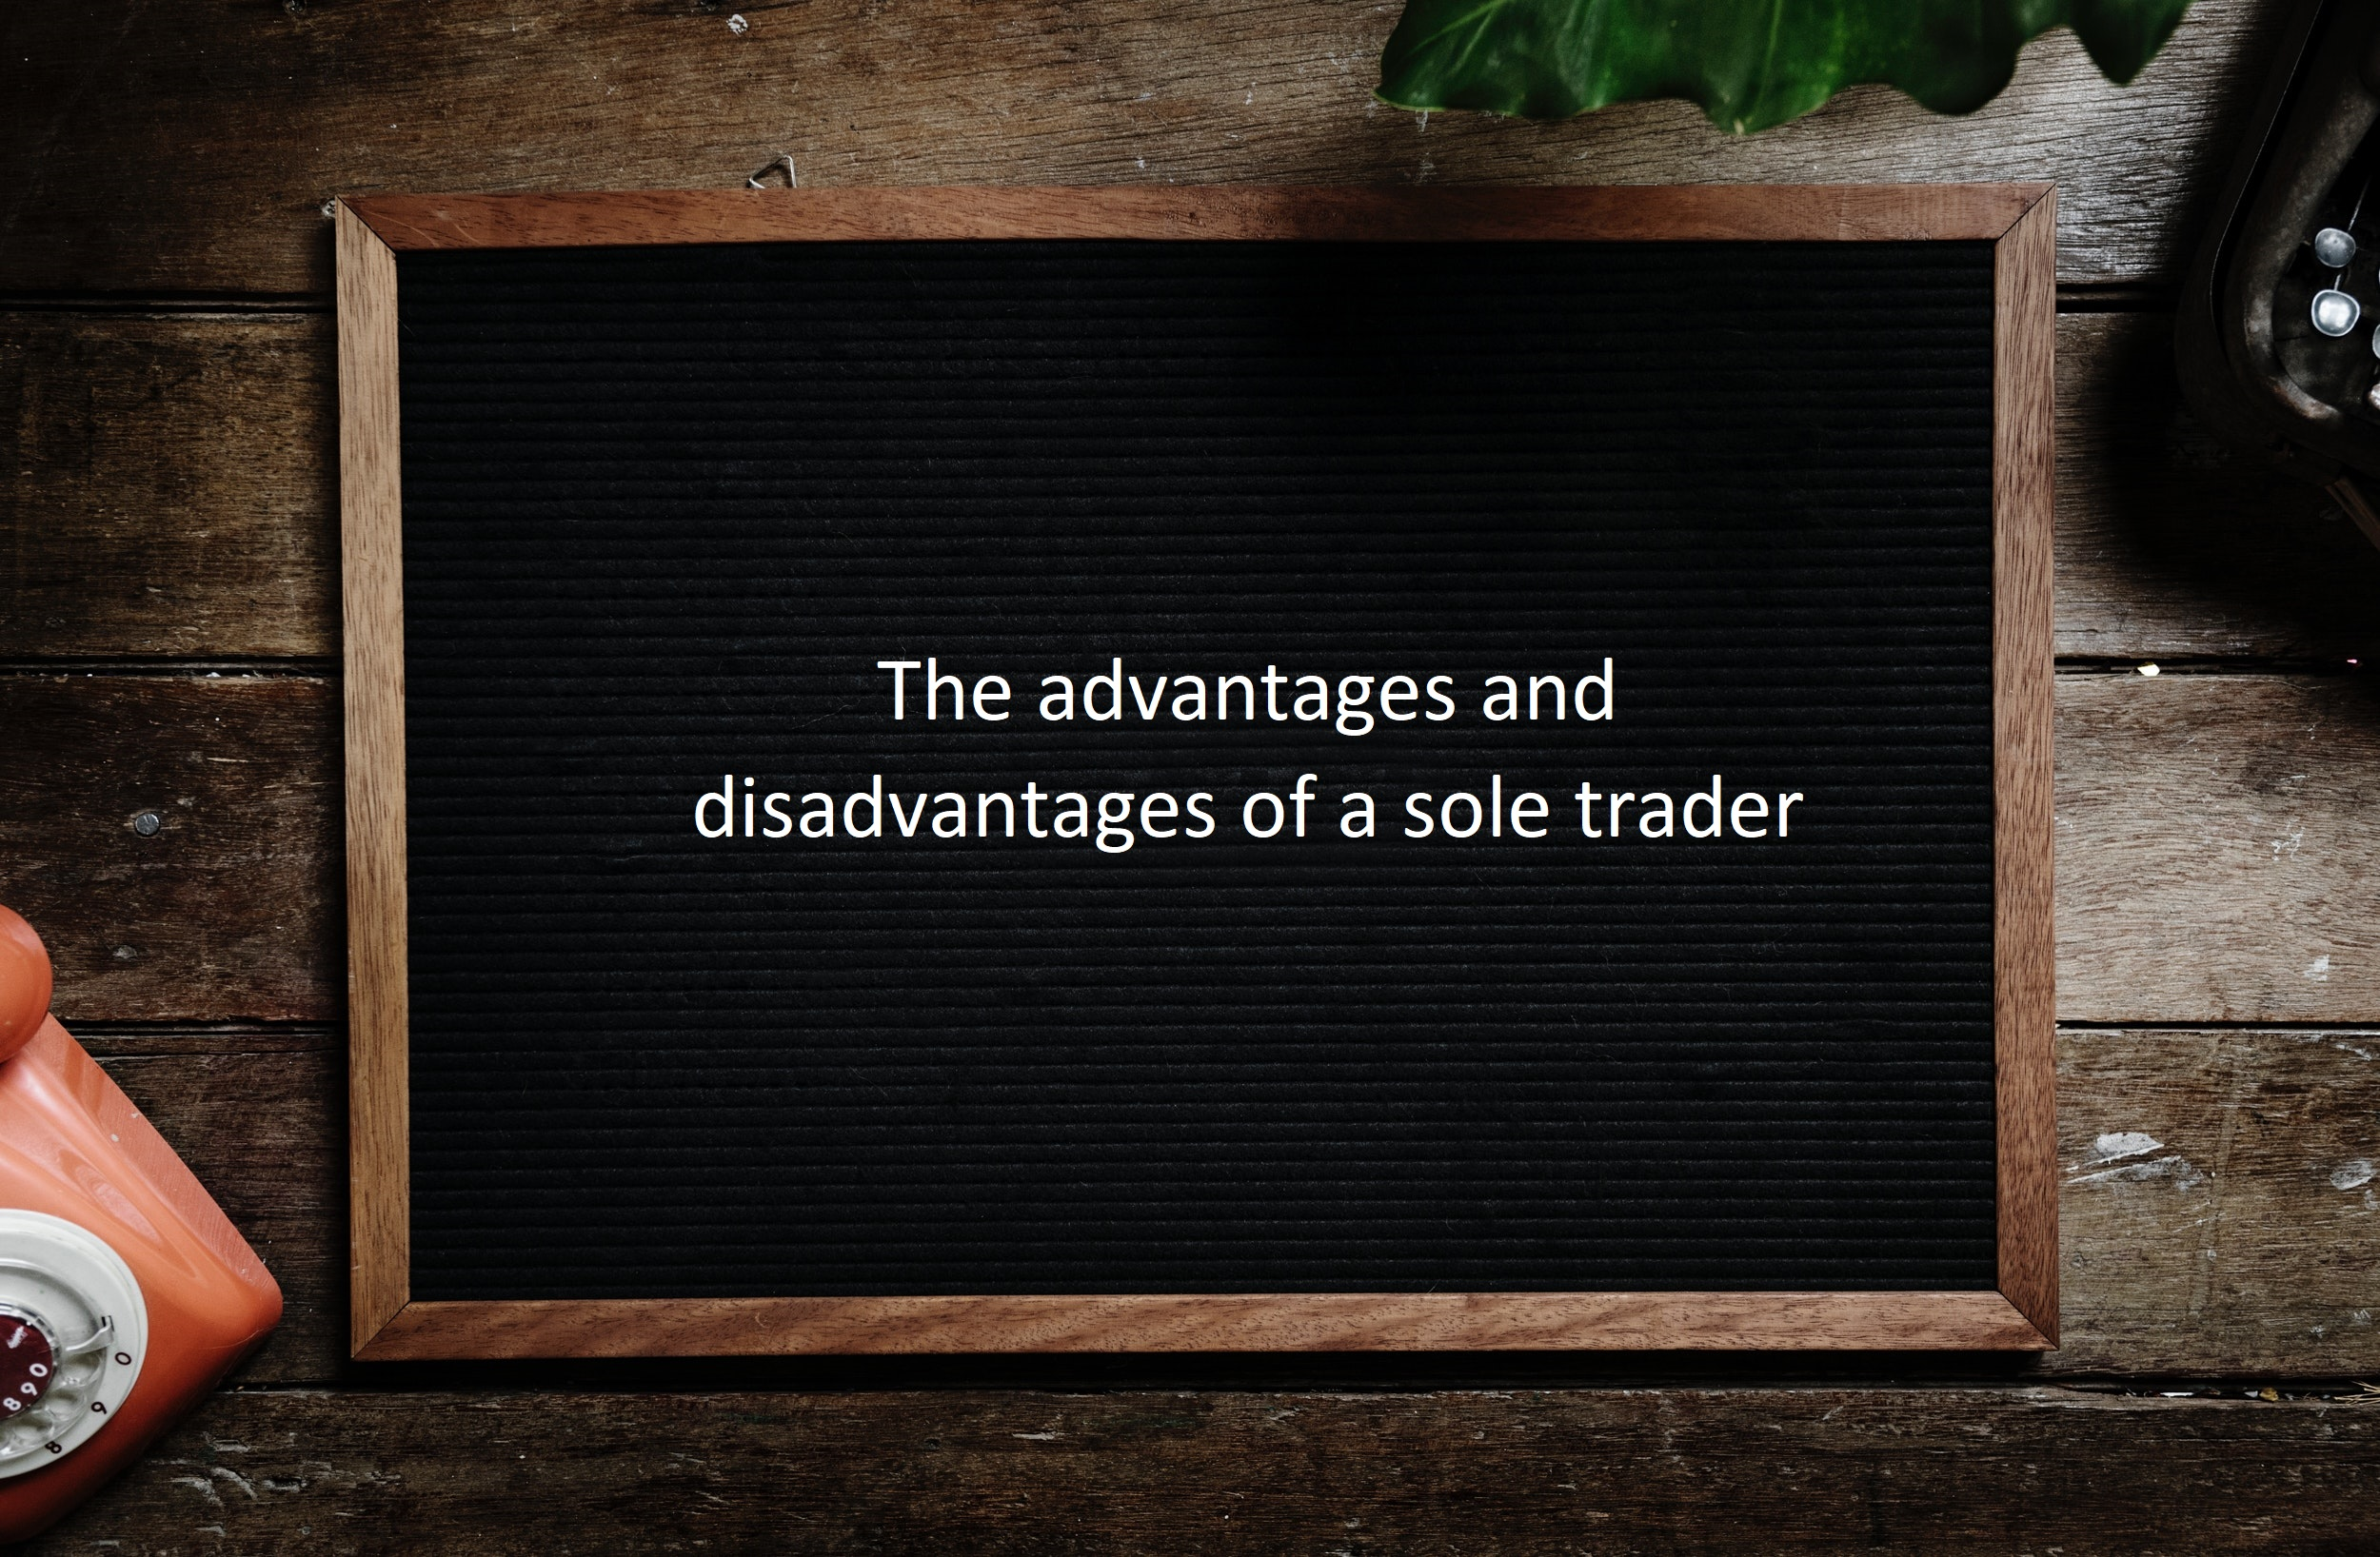 Sole trader advantages and disadvantages